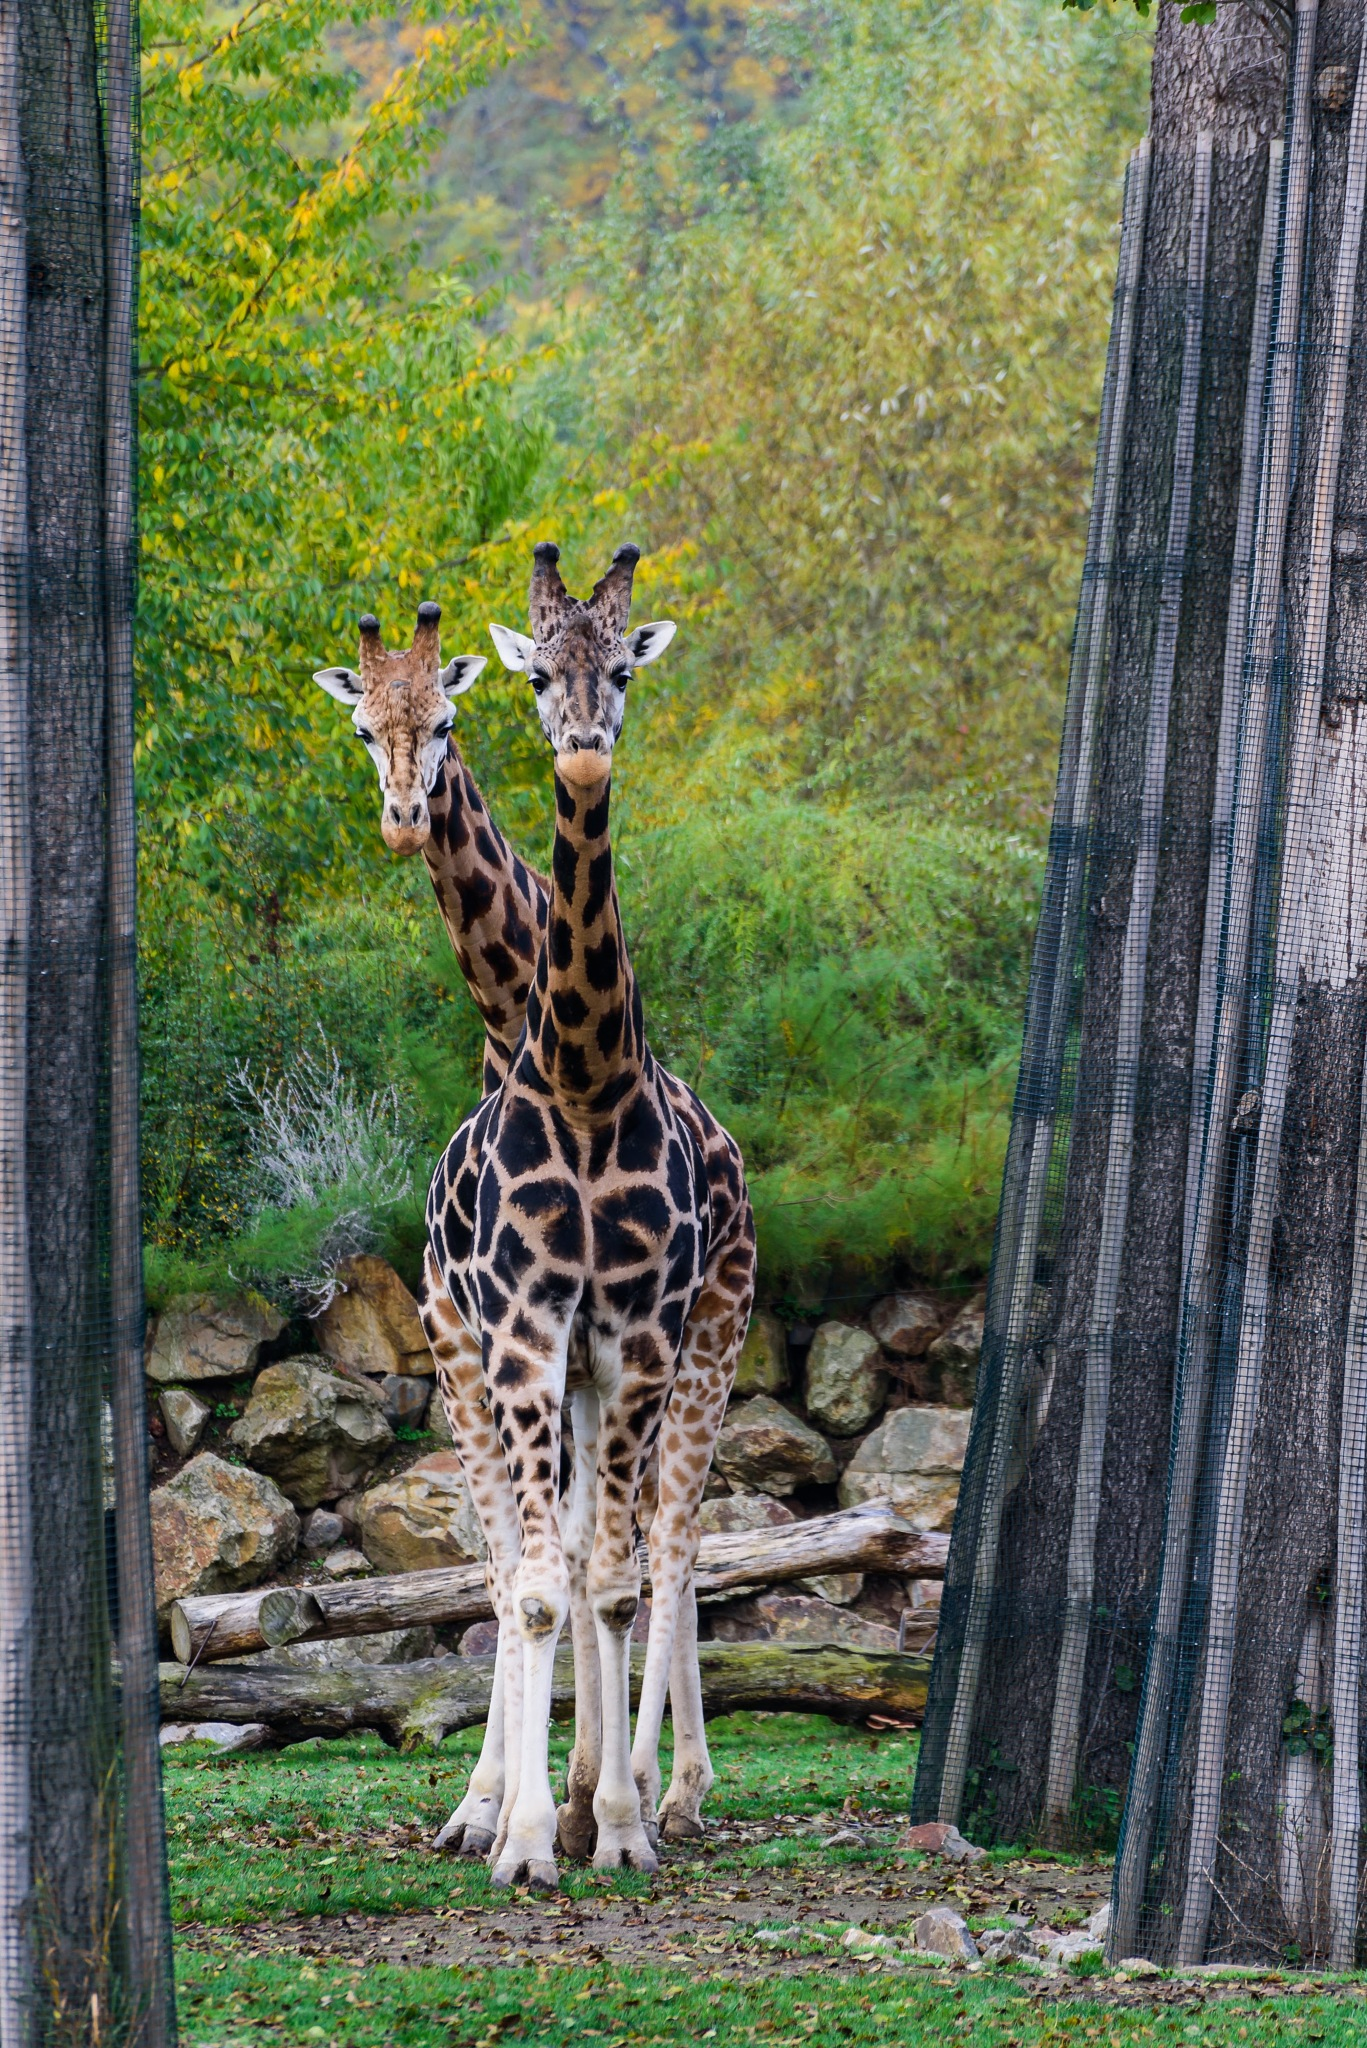 Have you ever seen two-headed Giraffe with eight legs? by Miroslav Ondříšek